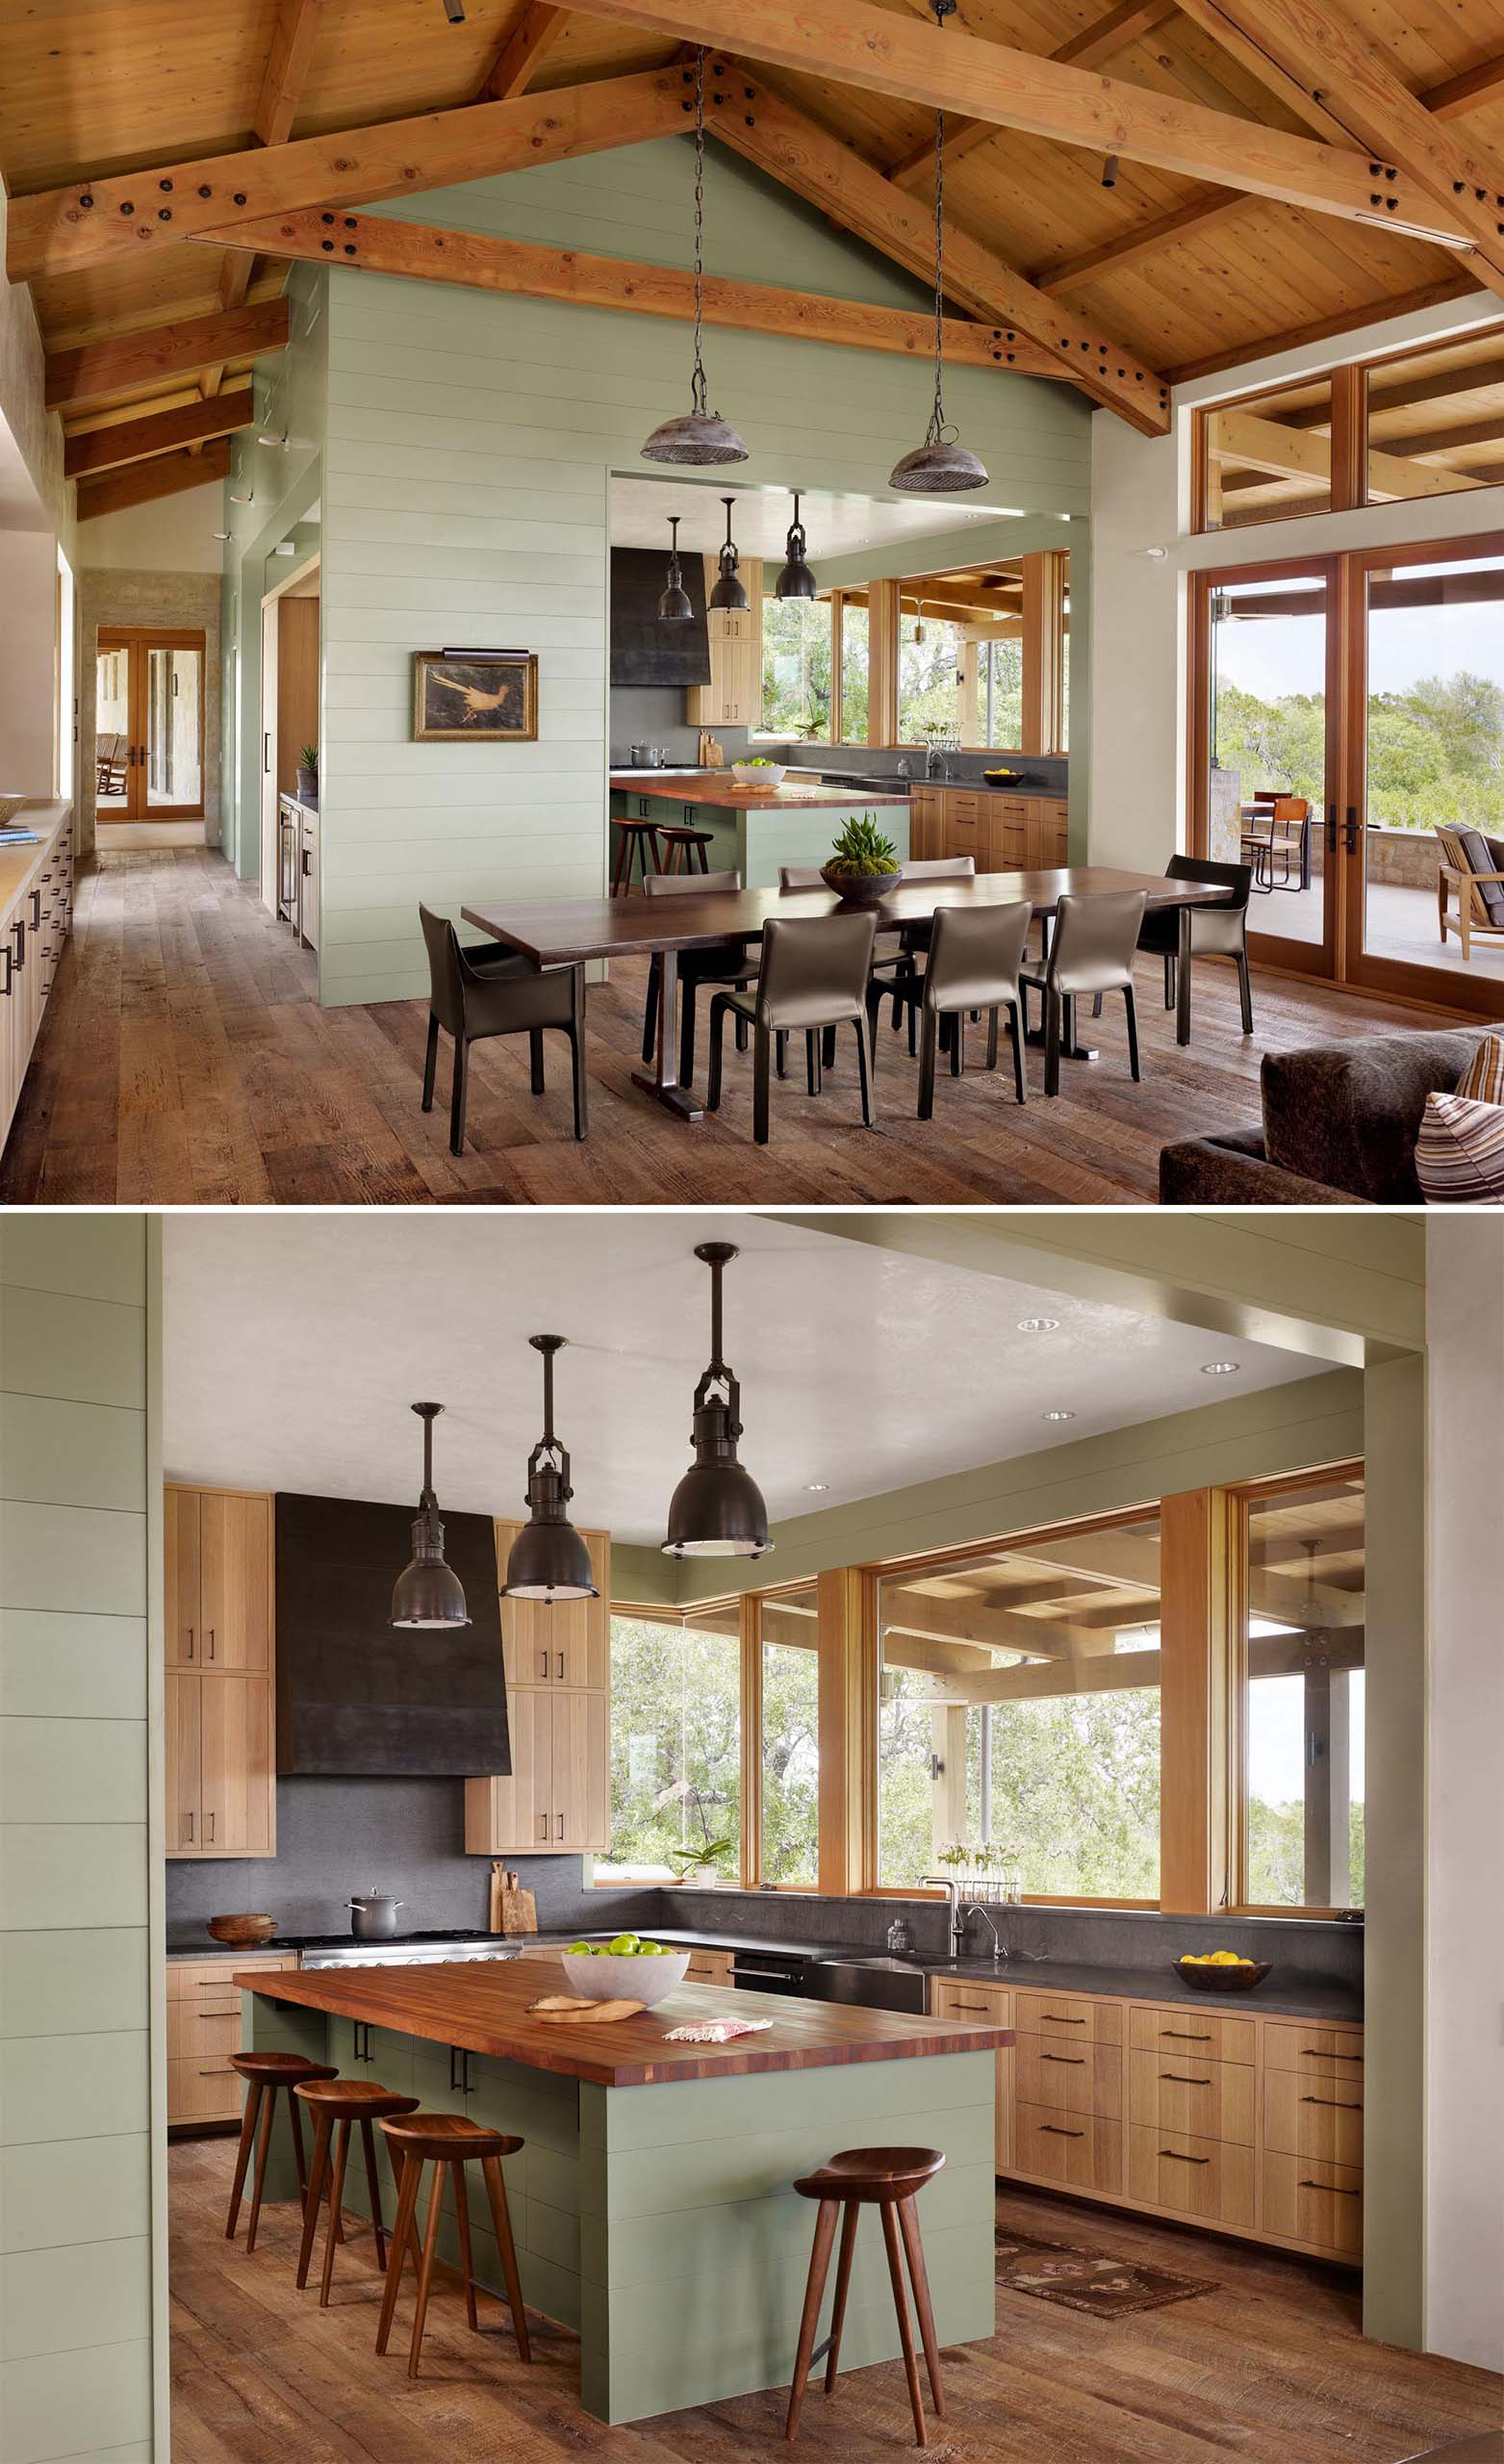 A contemporary sage green kitchen with wood accents.